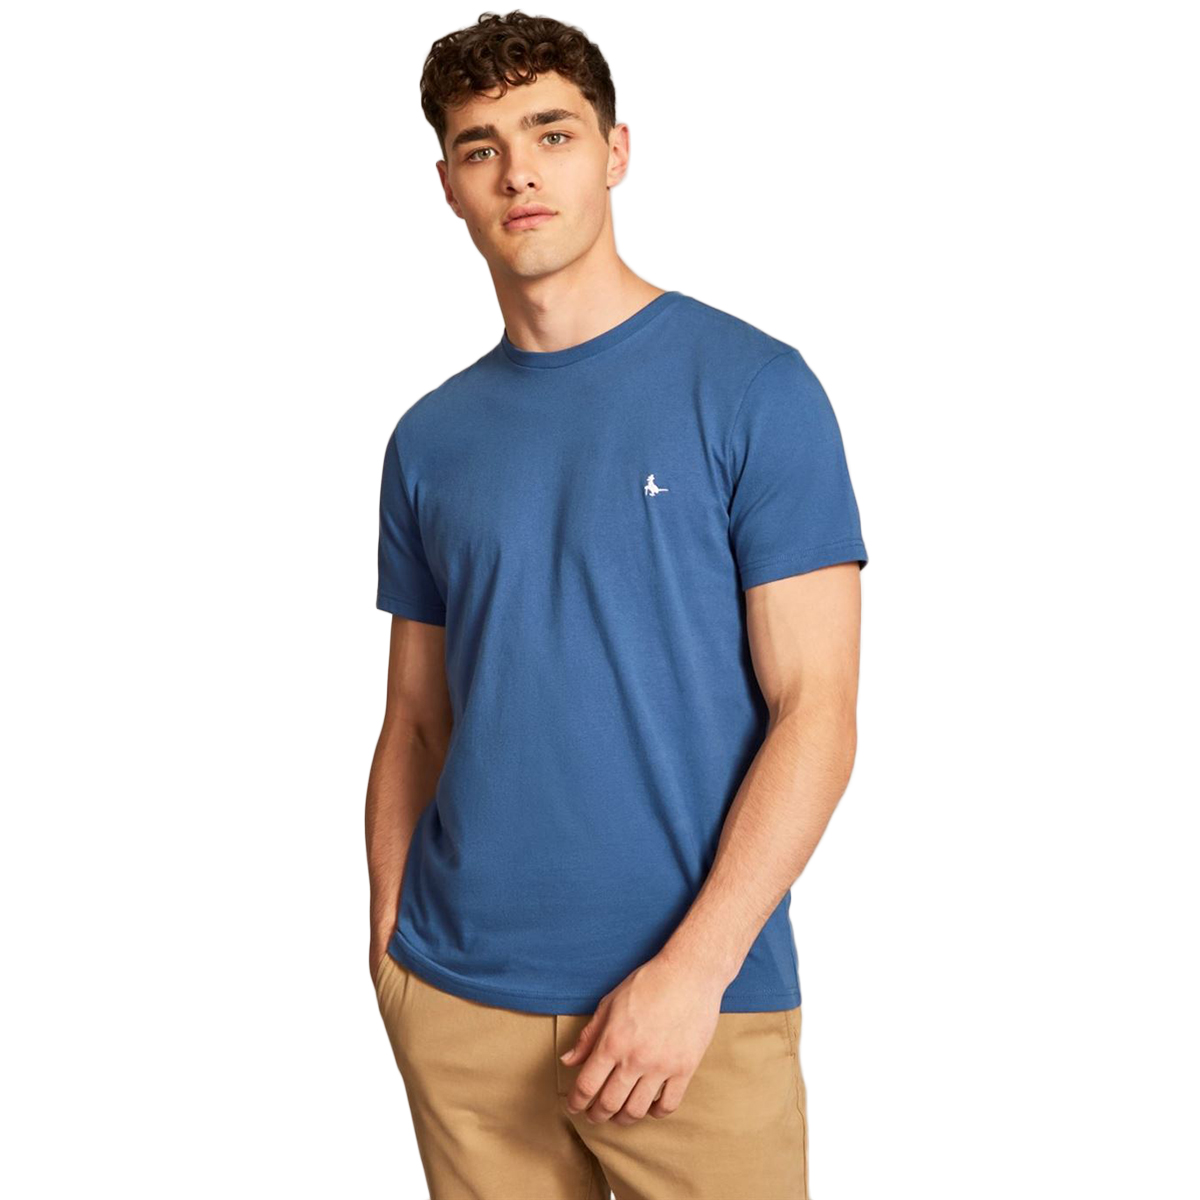 Jack Wills Men's Sandleford Short-Sleeve Tee - Blue, S